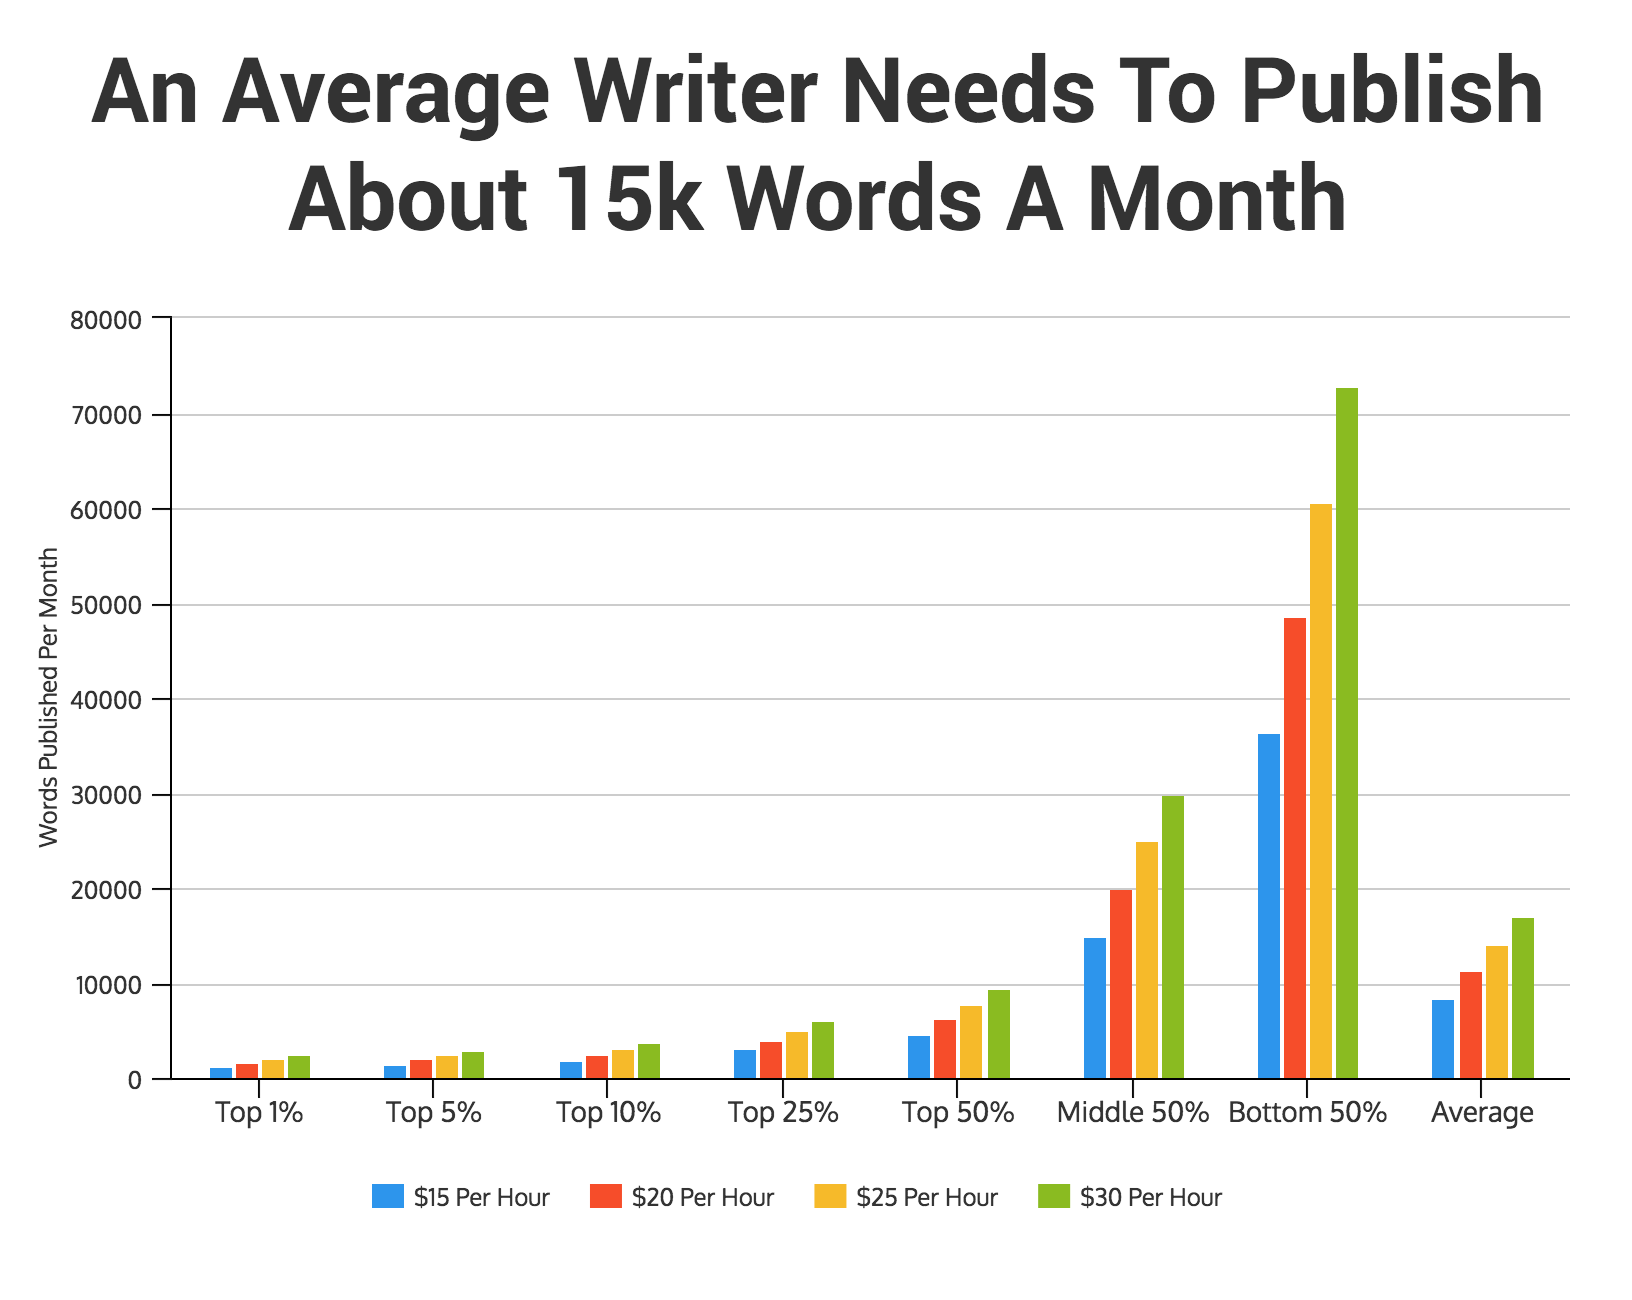 interactive how much do lance writers actually make scribdbook for the top writers this means publishing a modest 3k to 6k words per month in fact for the top 50 percent of writers the word count required for each